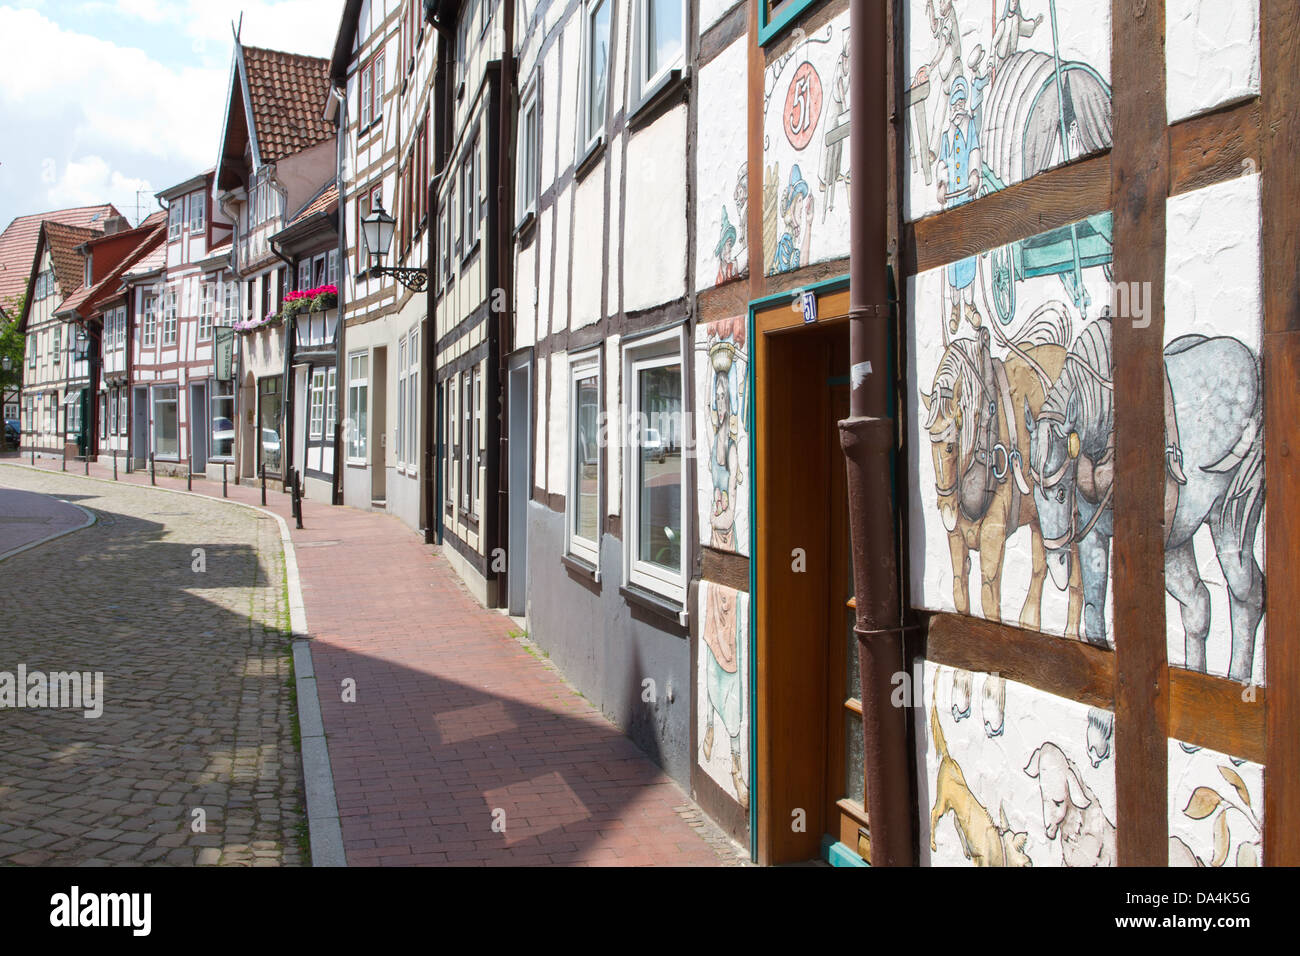 In an old cobbled street in Hameln/Hamlin a typically timbered building is finished with strong pictorial details - Stock Image